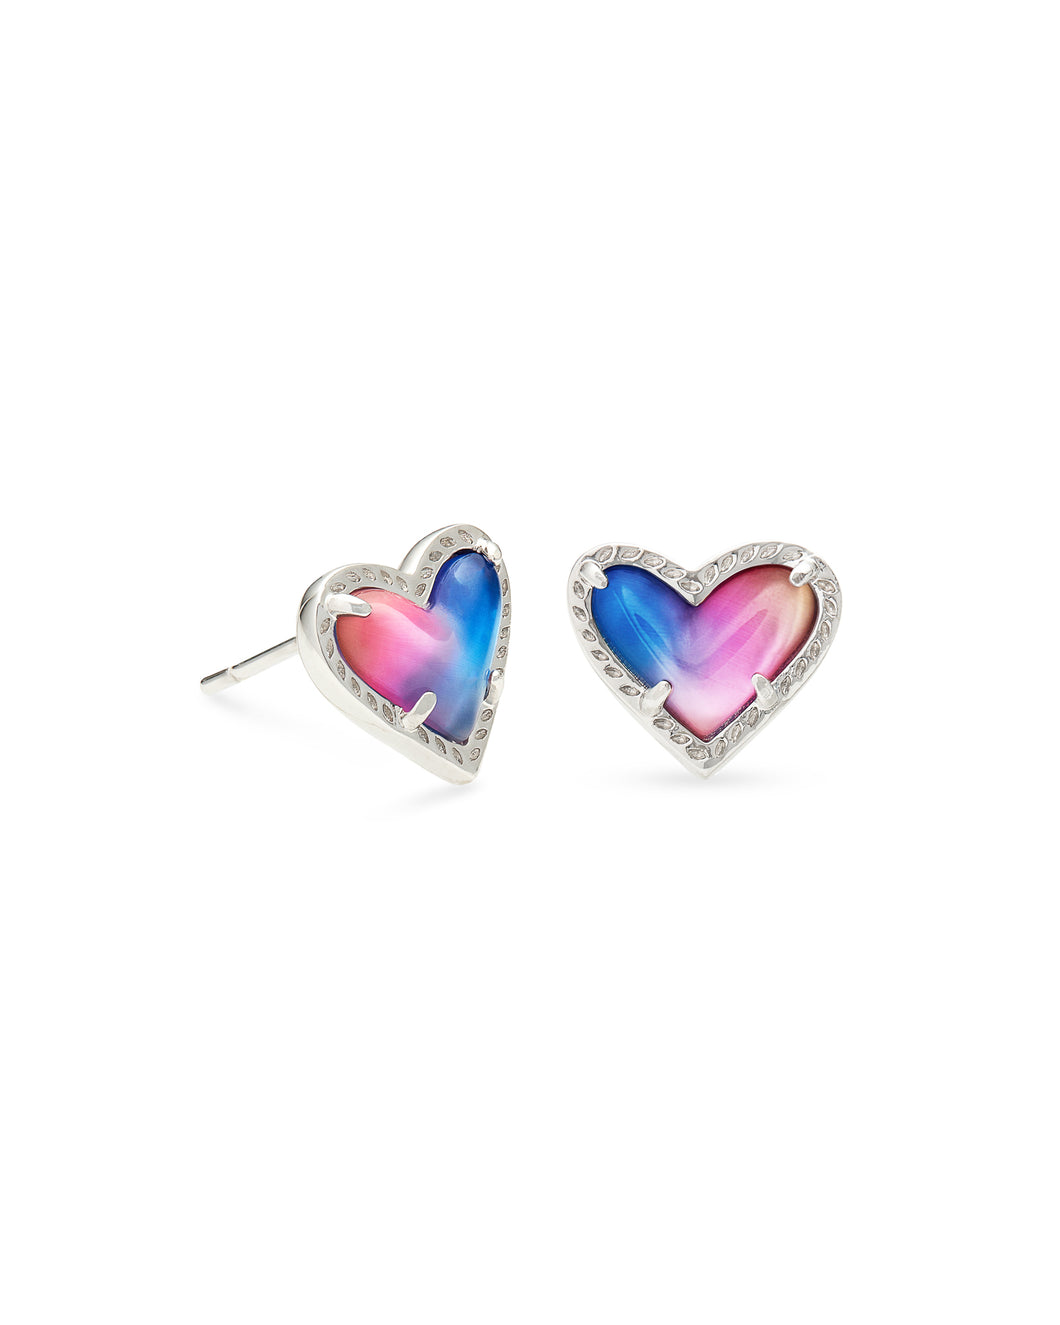 Kendra Scott Ari Heart Stud Earrings in Silver